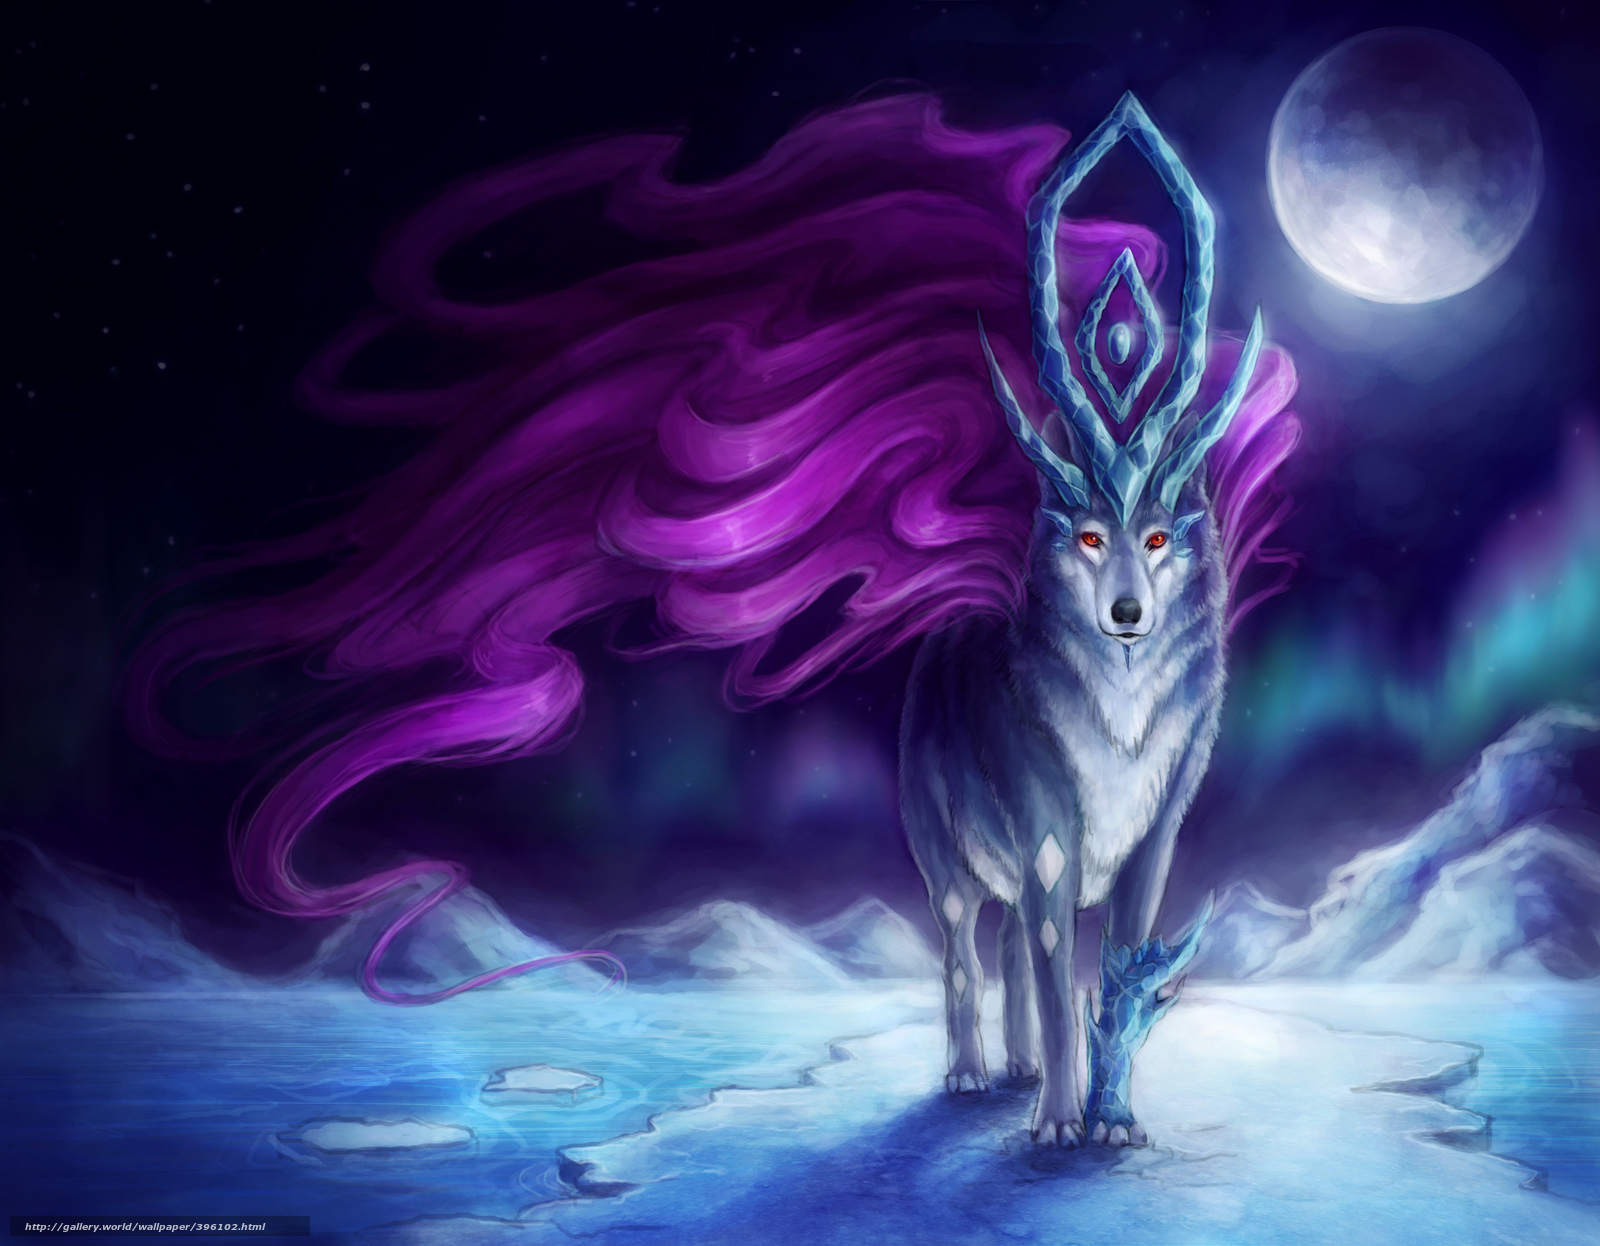 Magic wolf wallpapers - photo#16